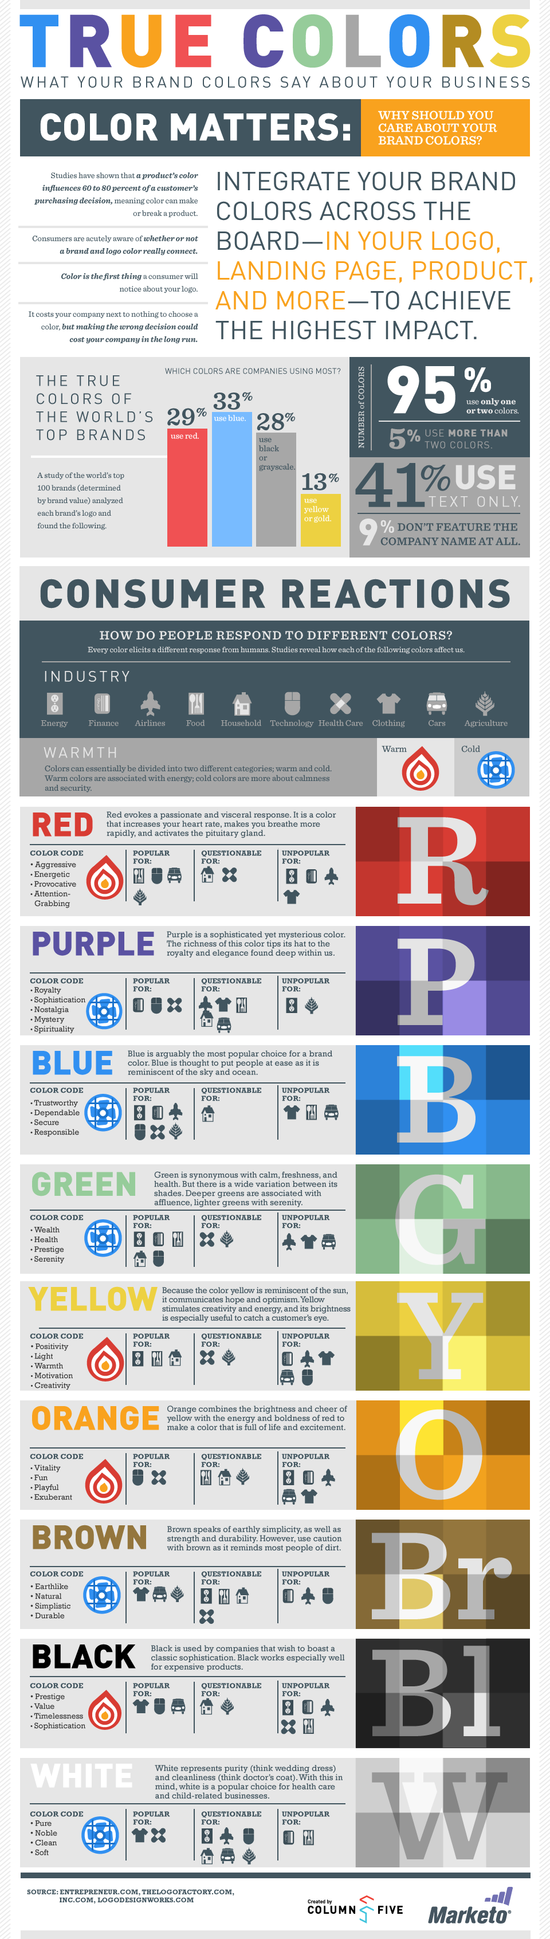 True Colors - What Your Brand Colors Say About Your Business